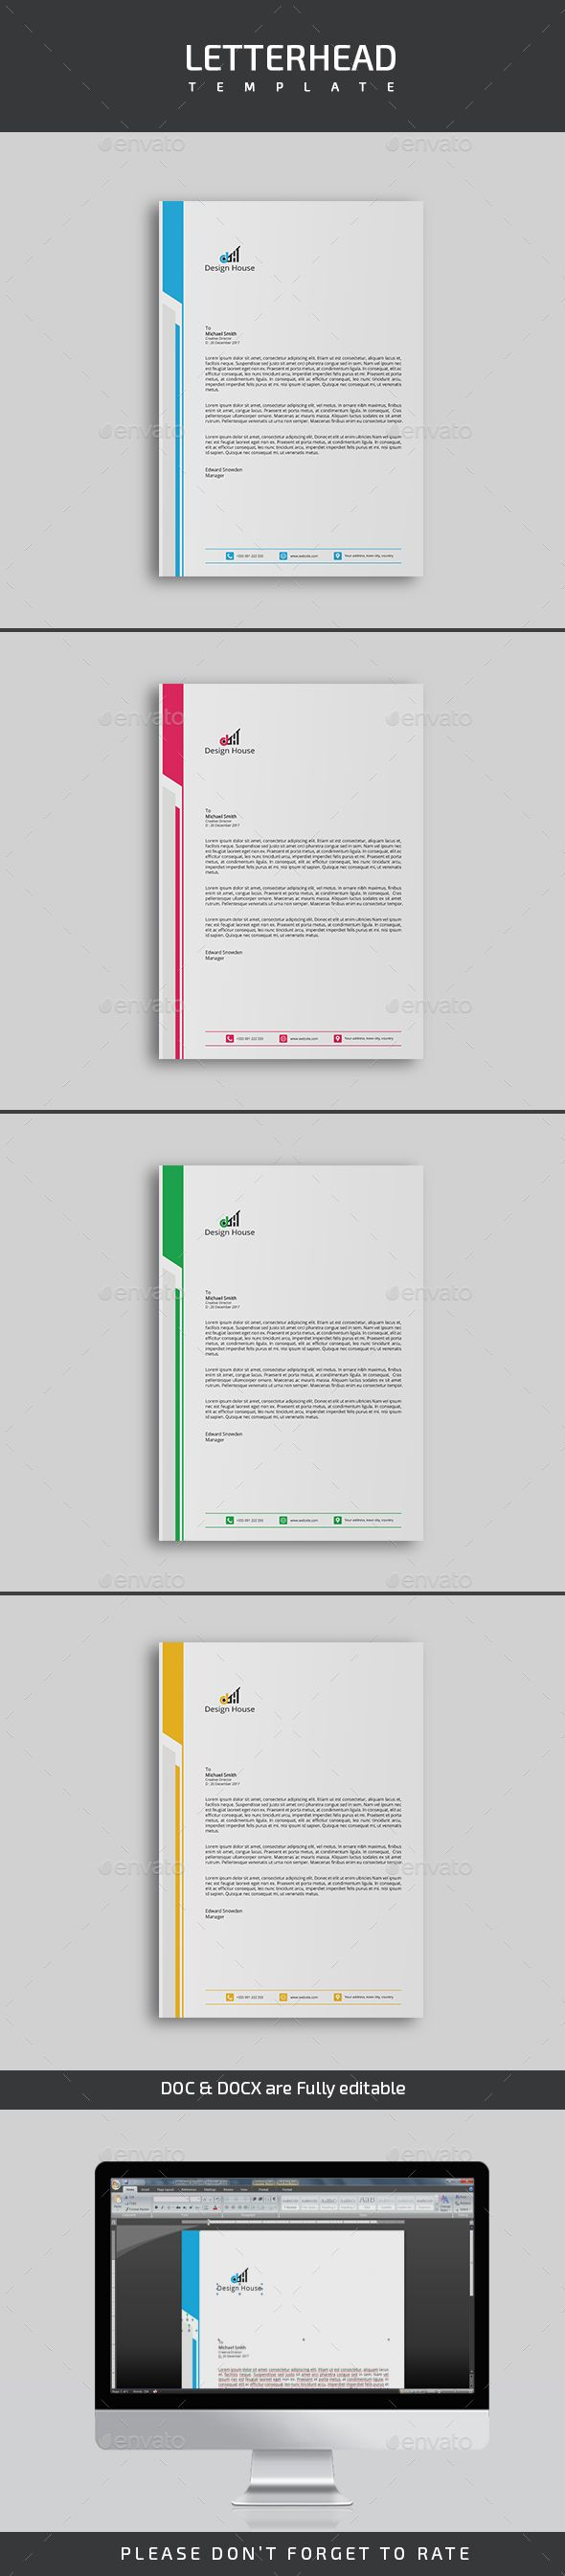 letter format on letterhead%0A  Letterhead Template   Stationery Print Templates